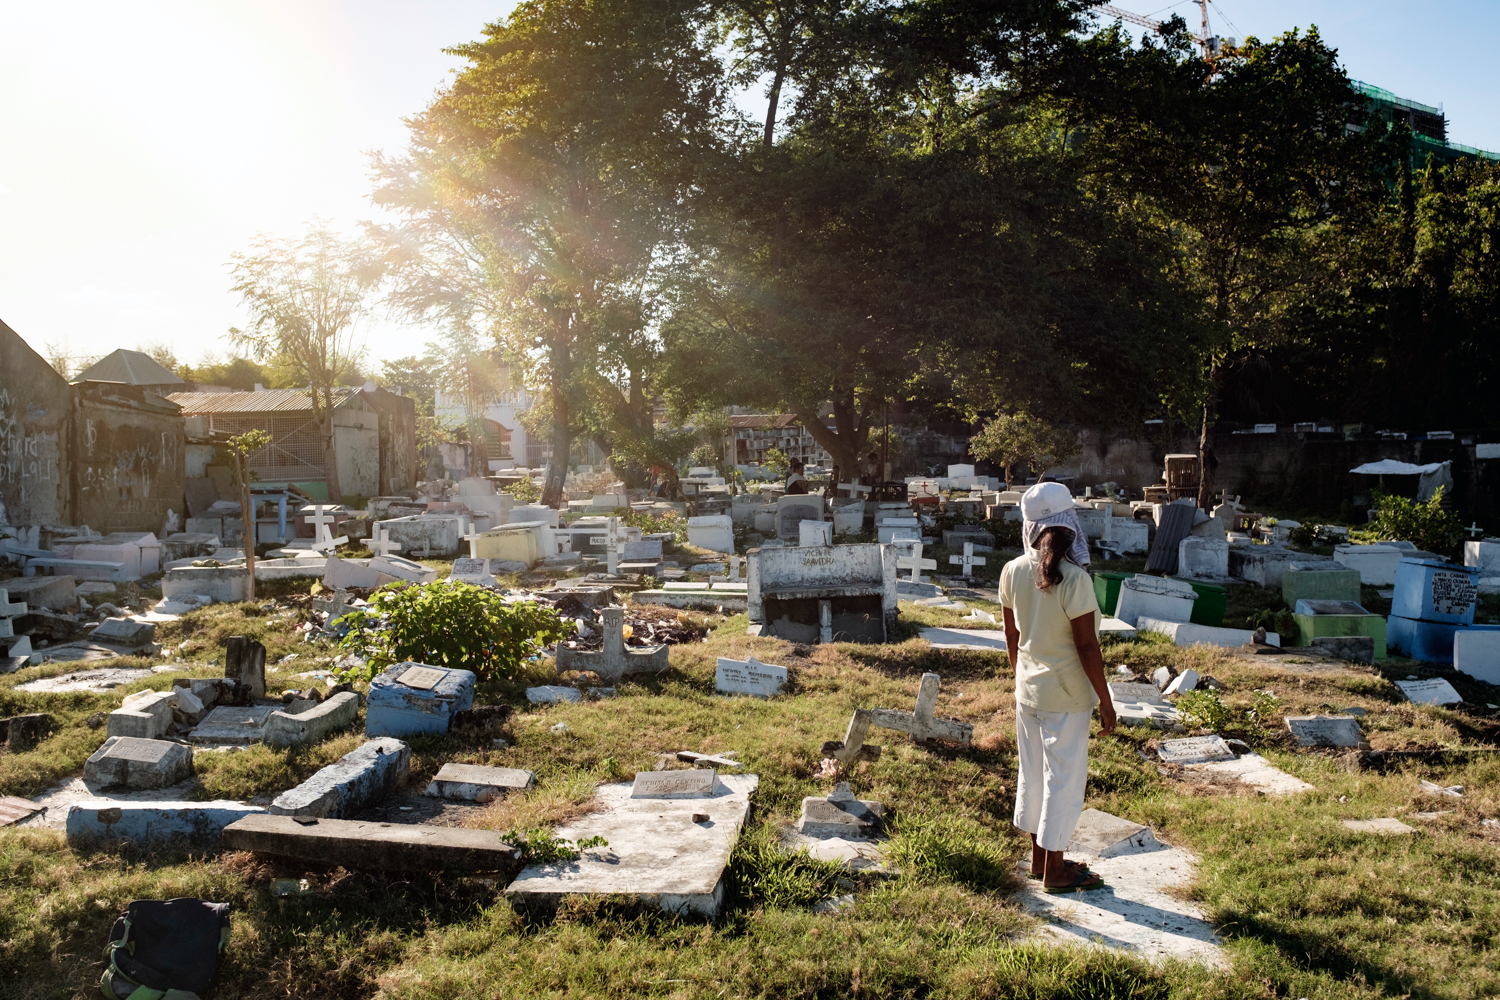 Inik Zuniga has lived amongst the dead at this cemetery since 1983.